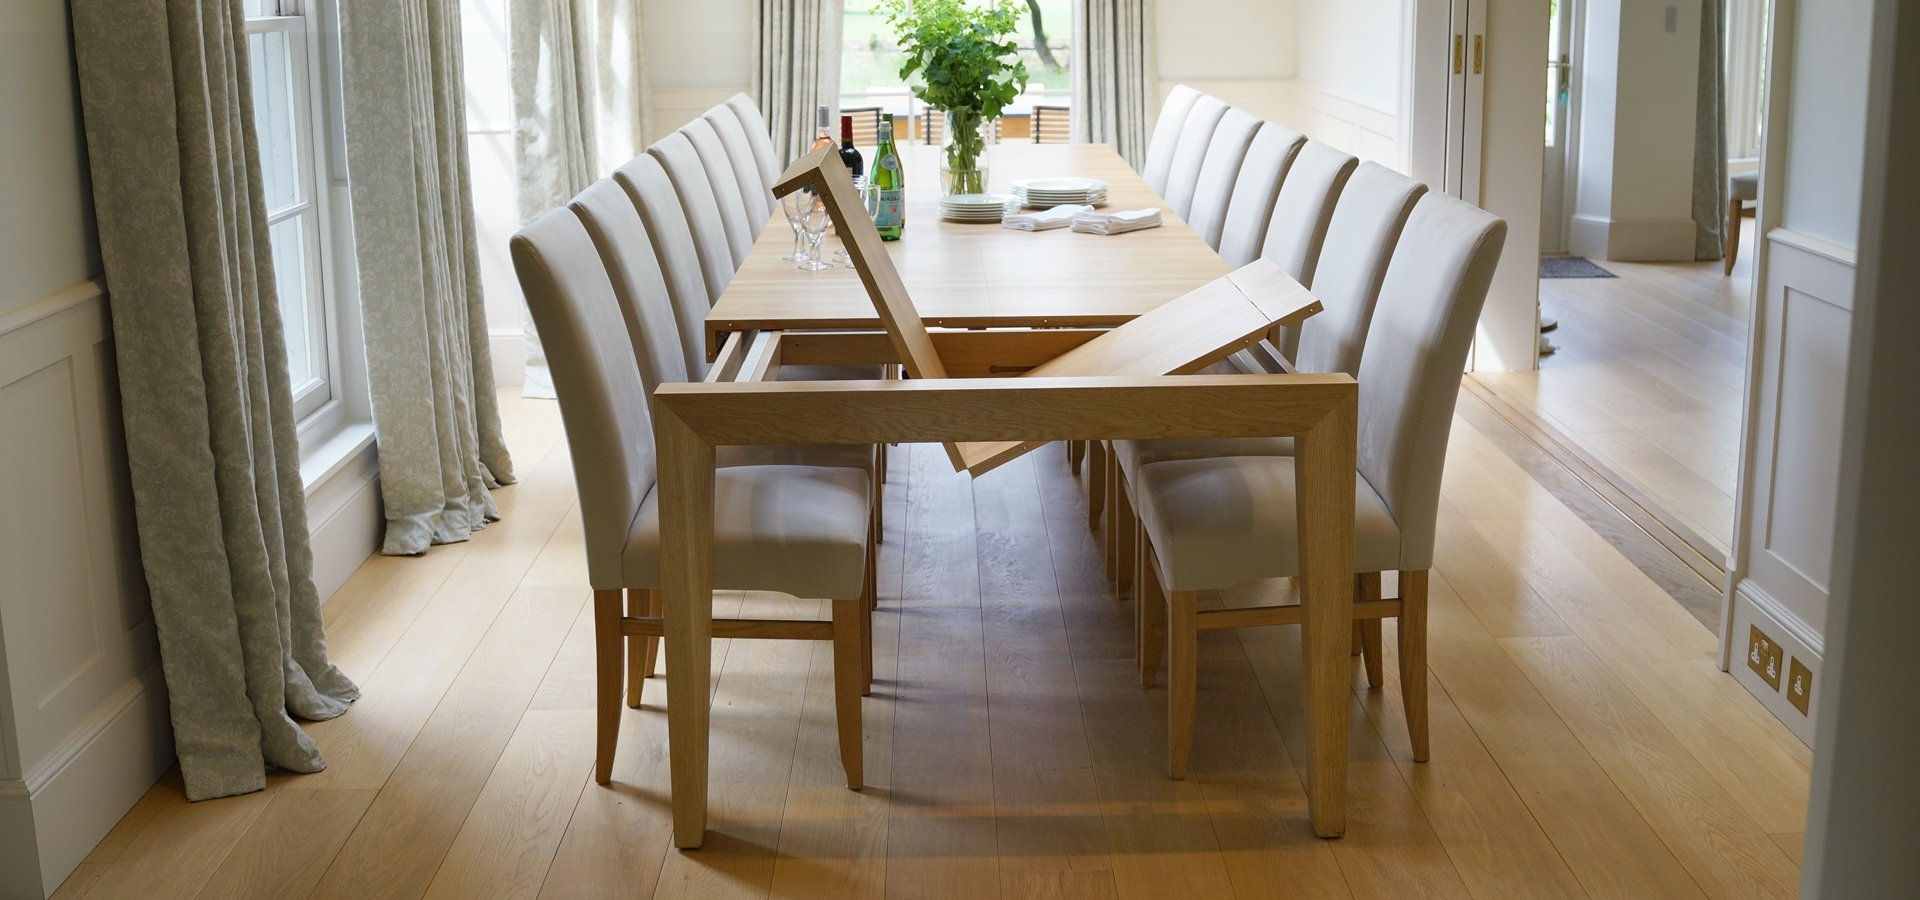 Contemporary Dining Room Tables And Chairs Pertaining To Most Popular Contemporary Dining Tables & Furnitureberrydesign (View 10 of 25)